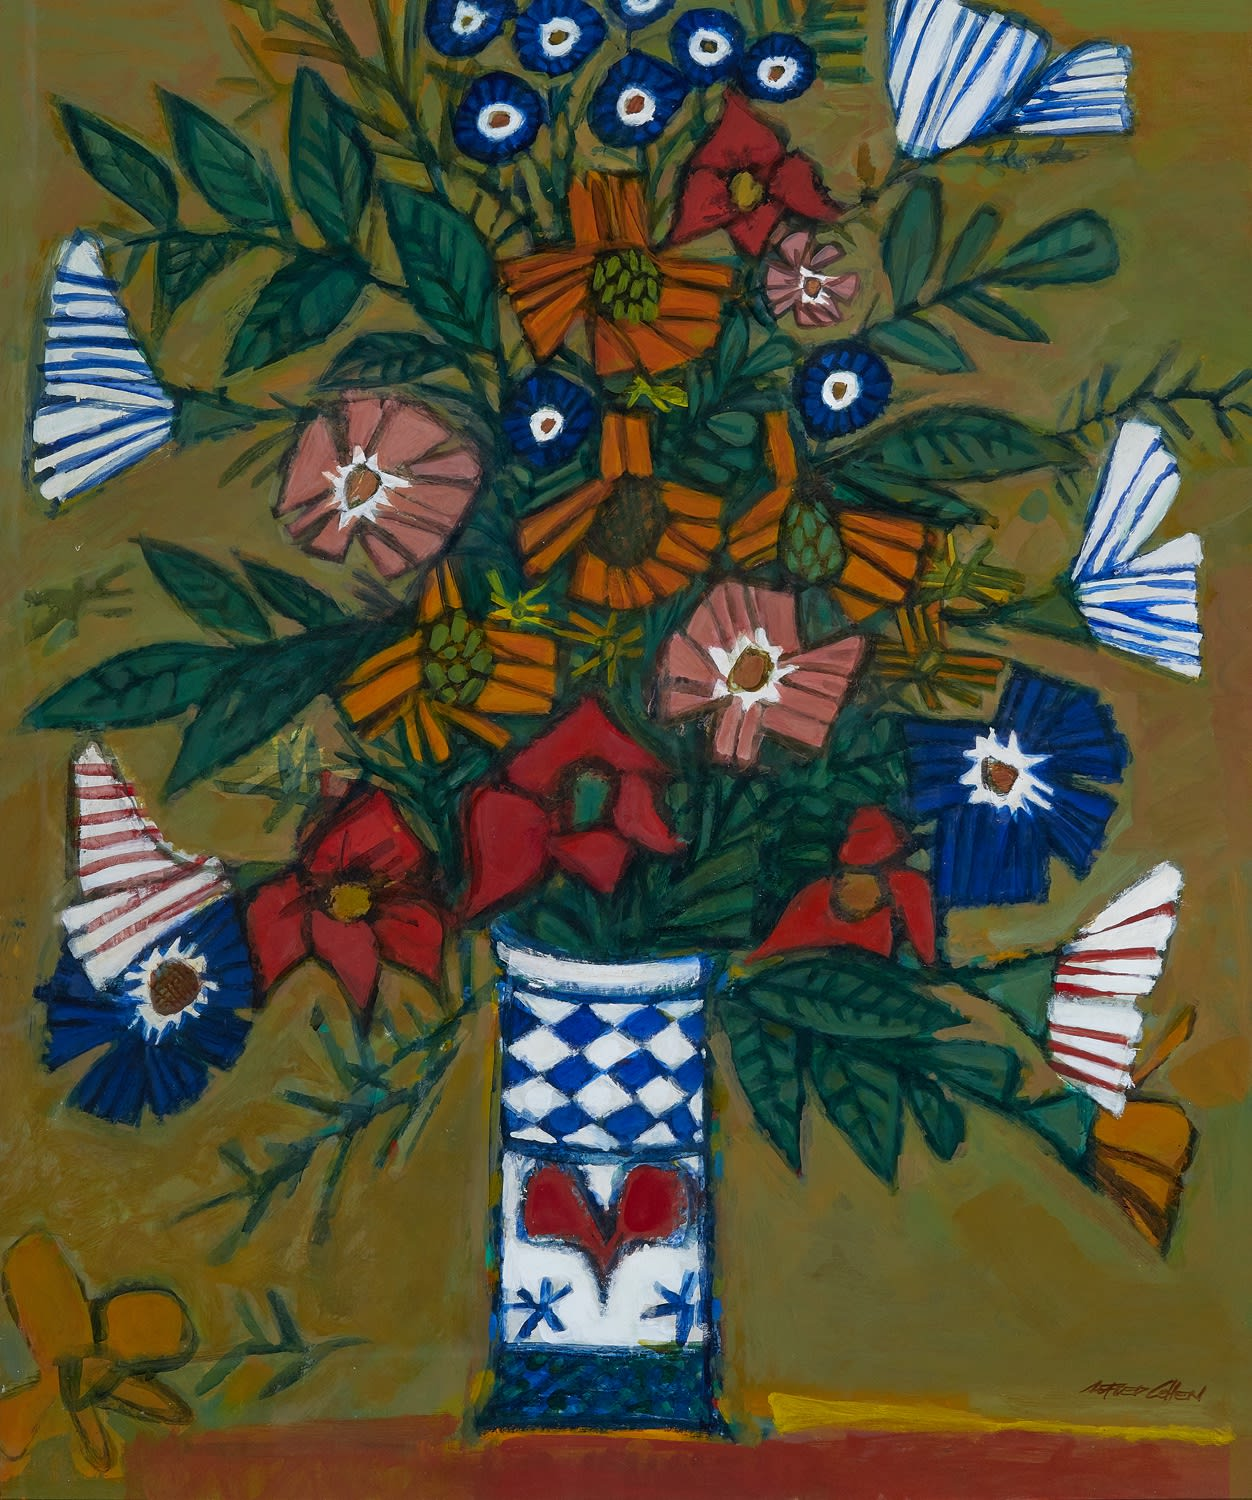 Alfred Cohen (1920-2001) Flowers 1985 Oil on board 91.5 x 76 cm Private Collection © Estate of Alfred Cohen 2020